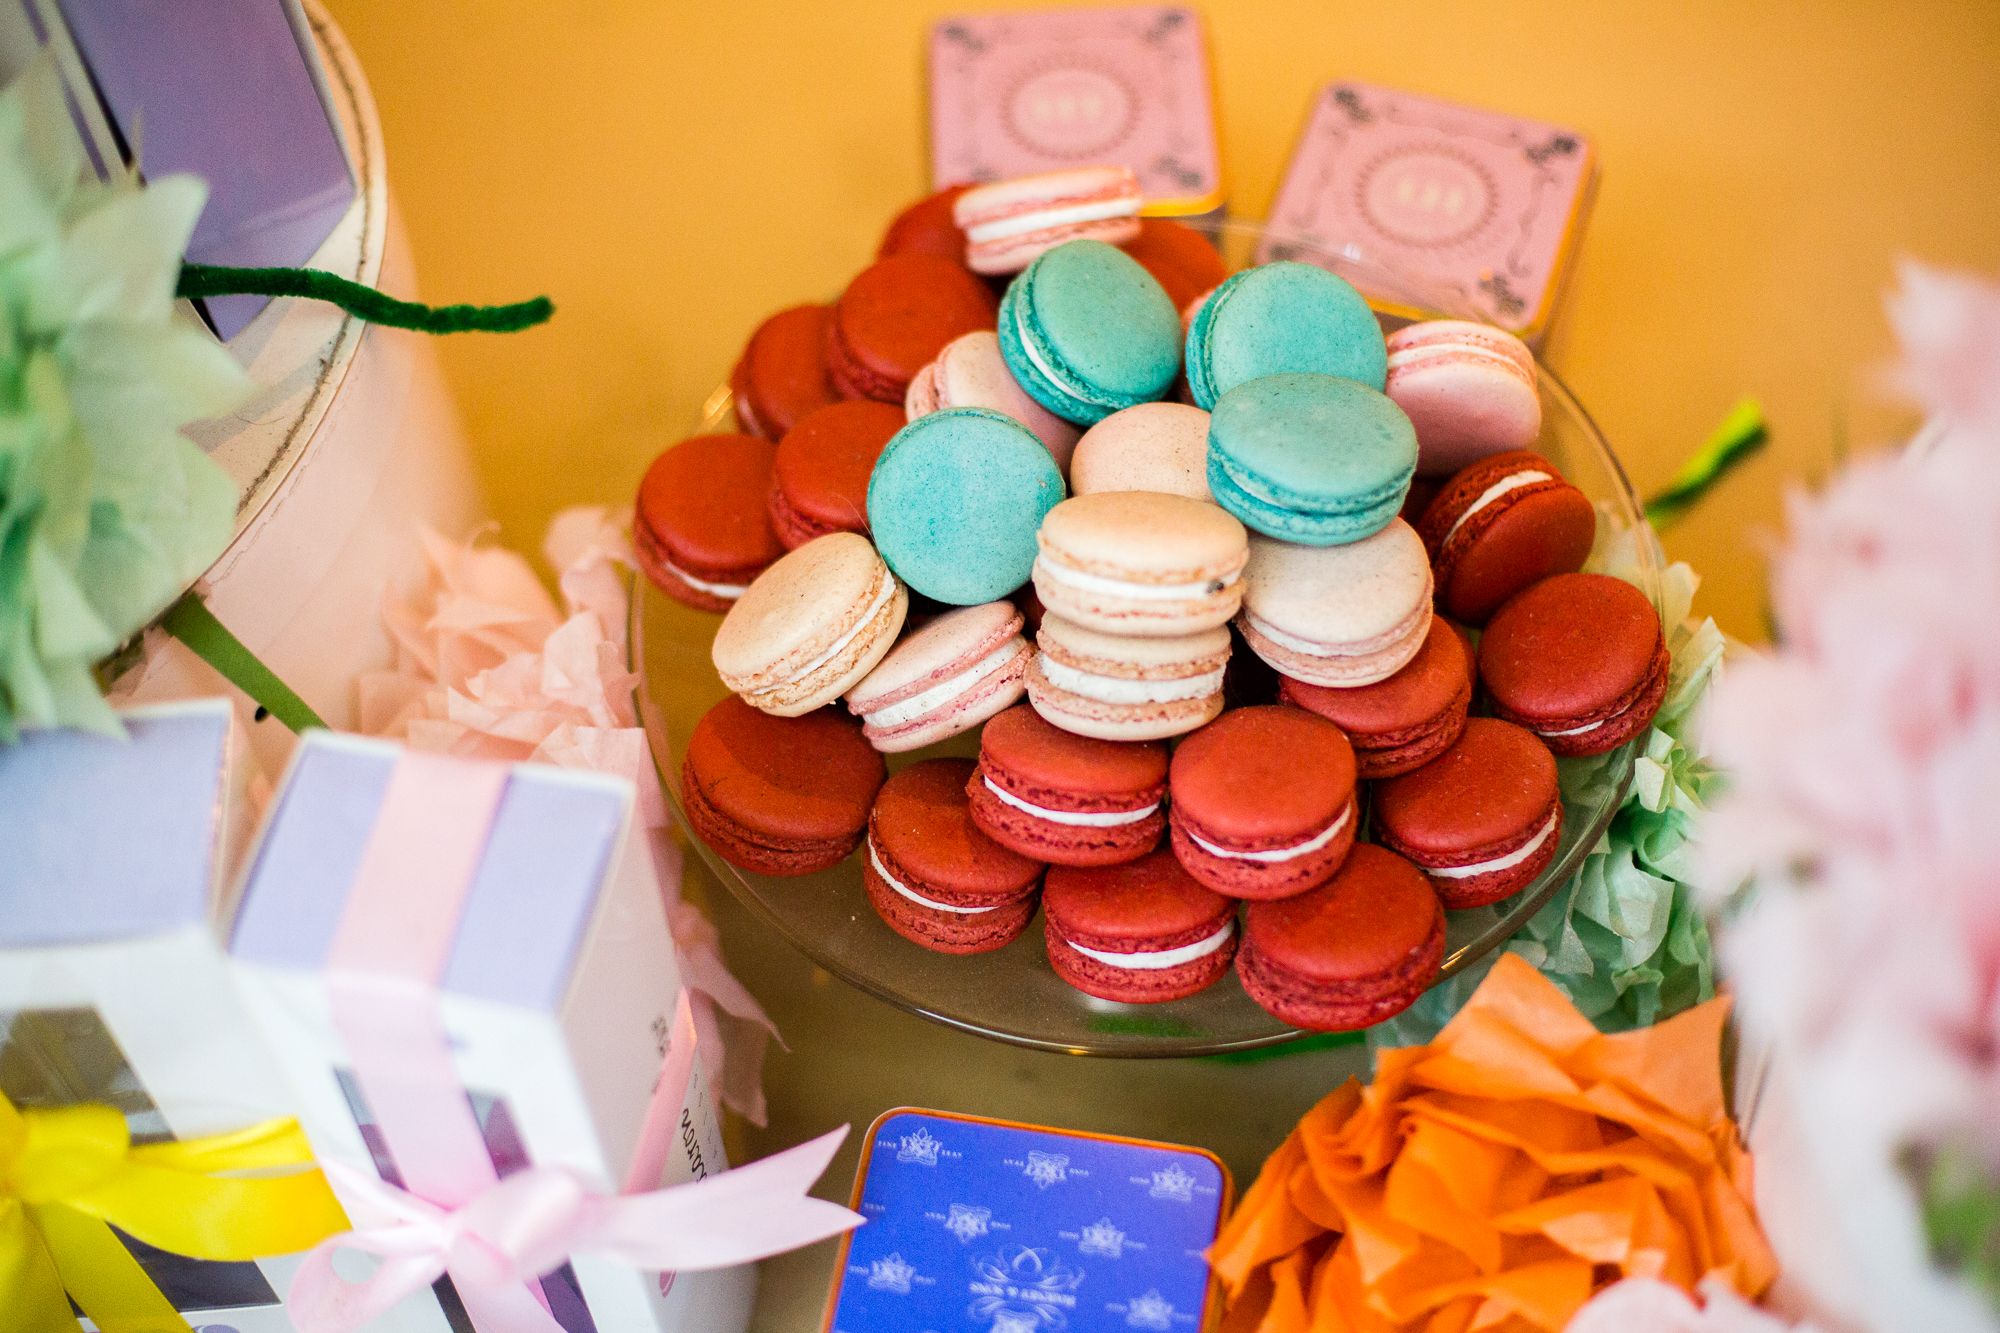 """I still have no idea what Macarons actually are, but we got some. She got a lemon basil for her and her friend. We brought Sarah back an """"Elvis"""" with bananas and peanut butter. For her brother: Cheetos flavored Macaron."""